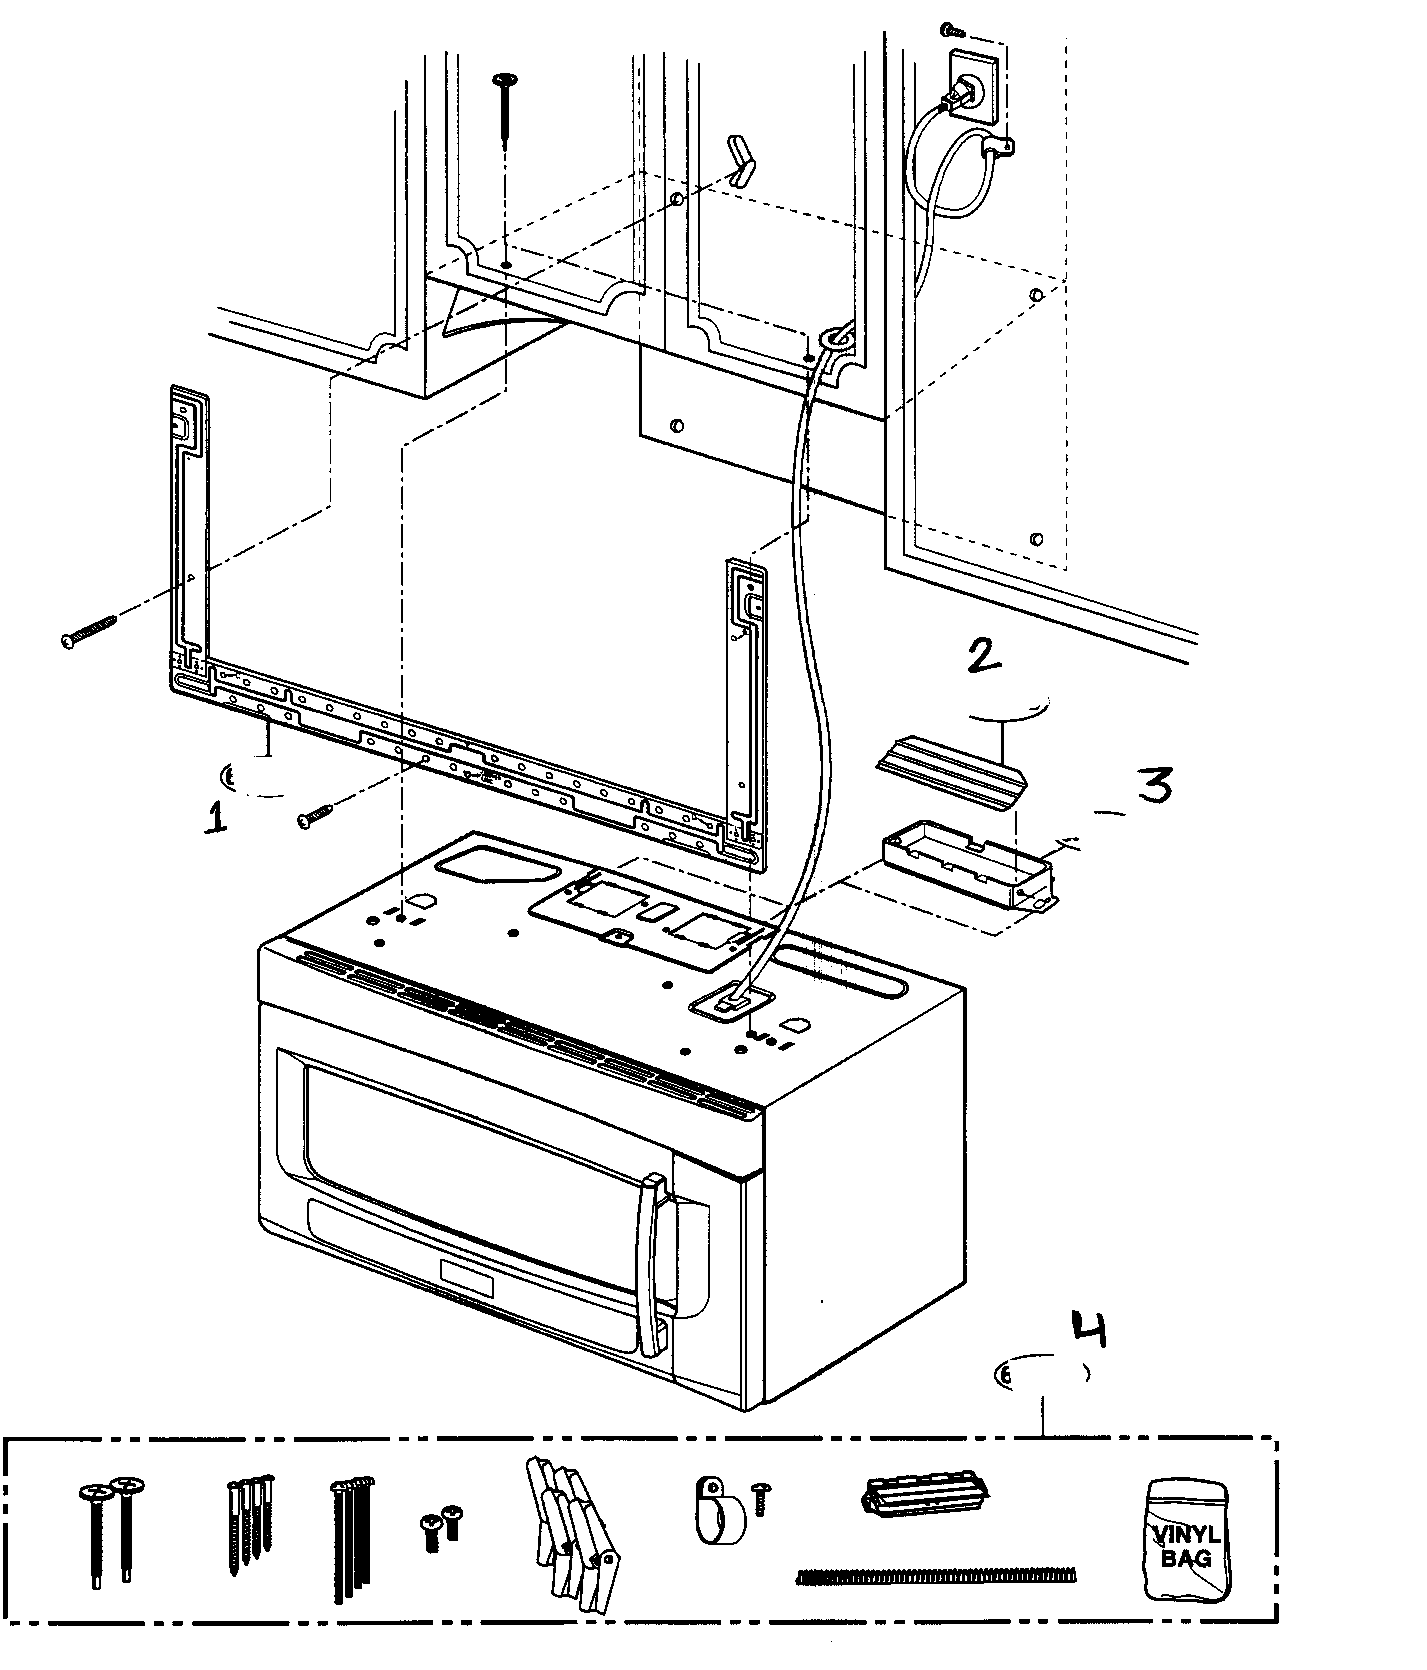 INSTALLATION PARTS Diagram & Parts List for Model